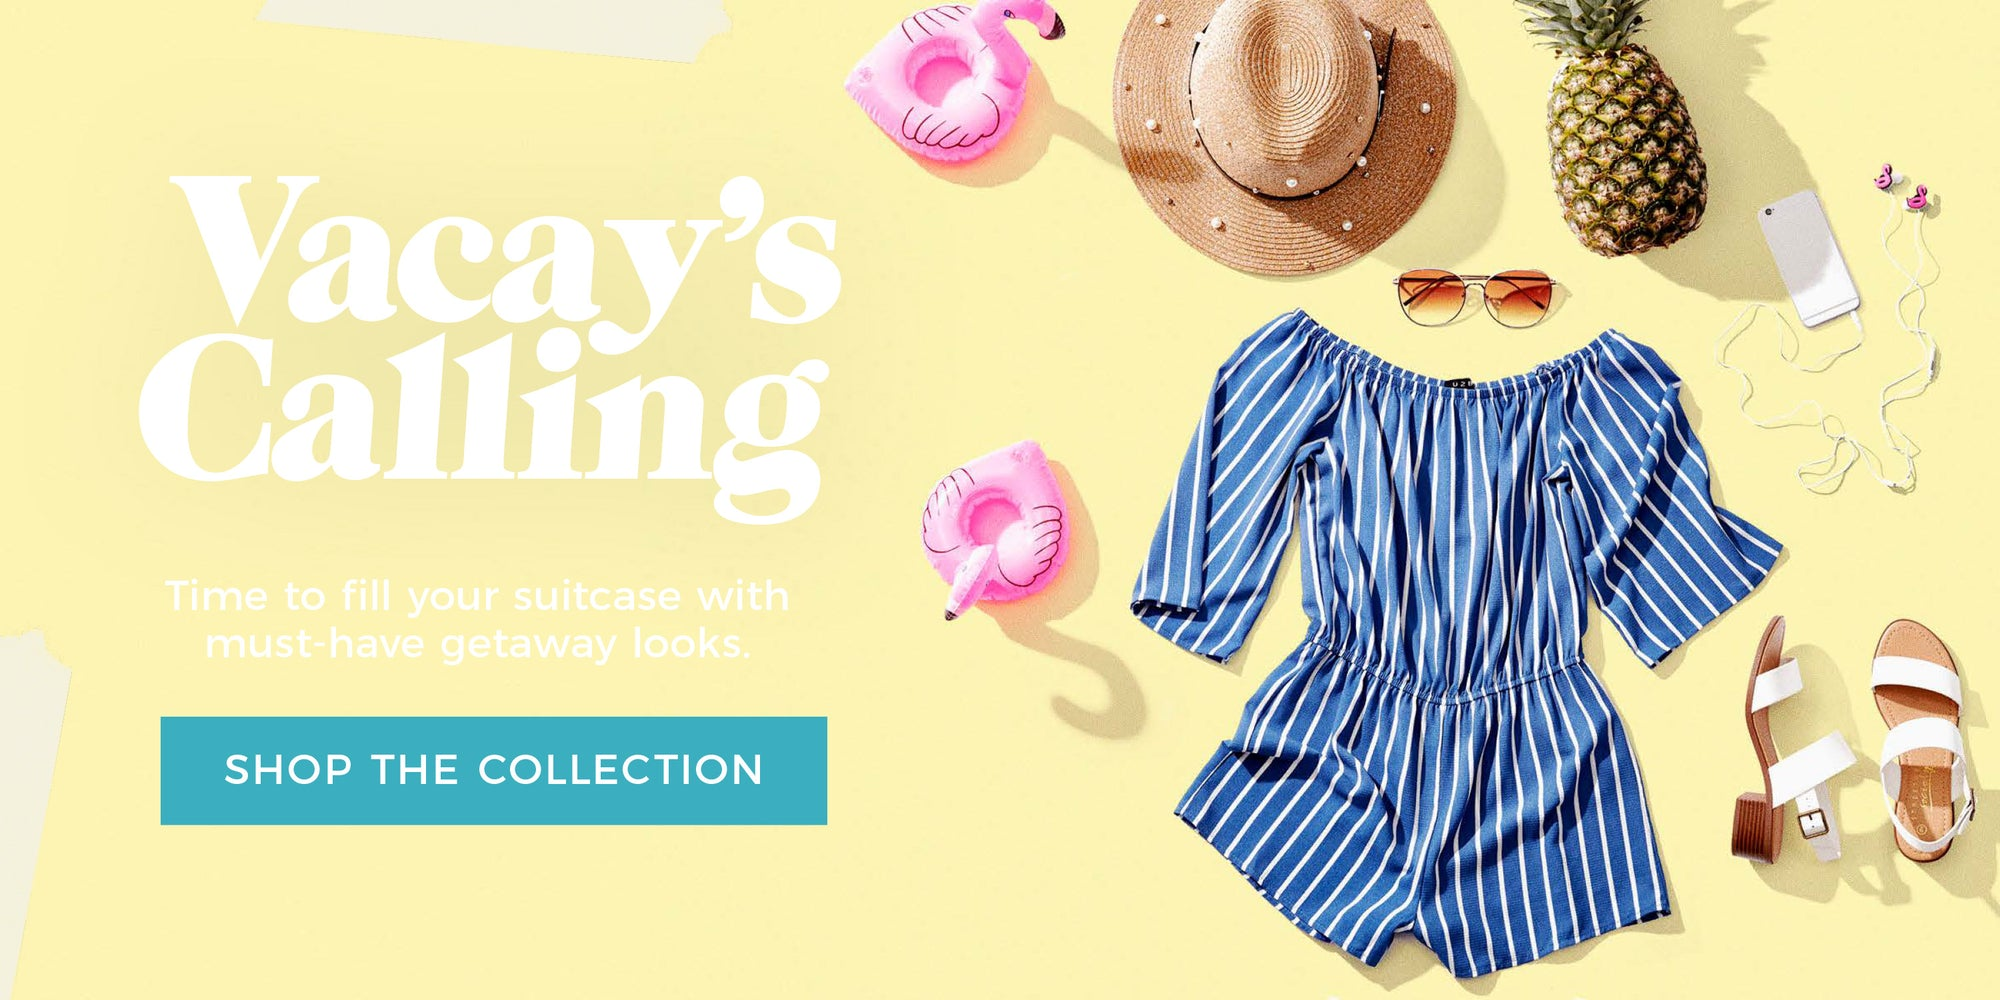 Vacay's Calling - Shop The Collection